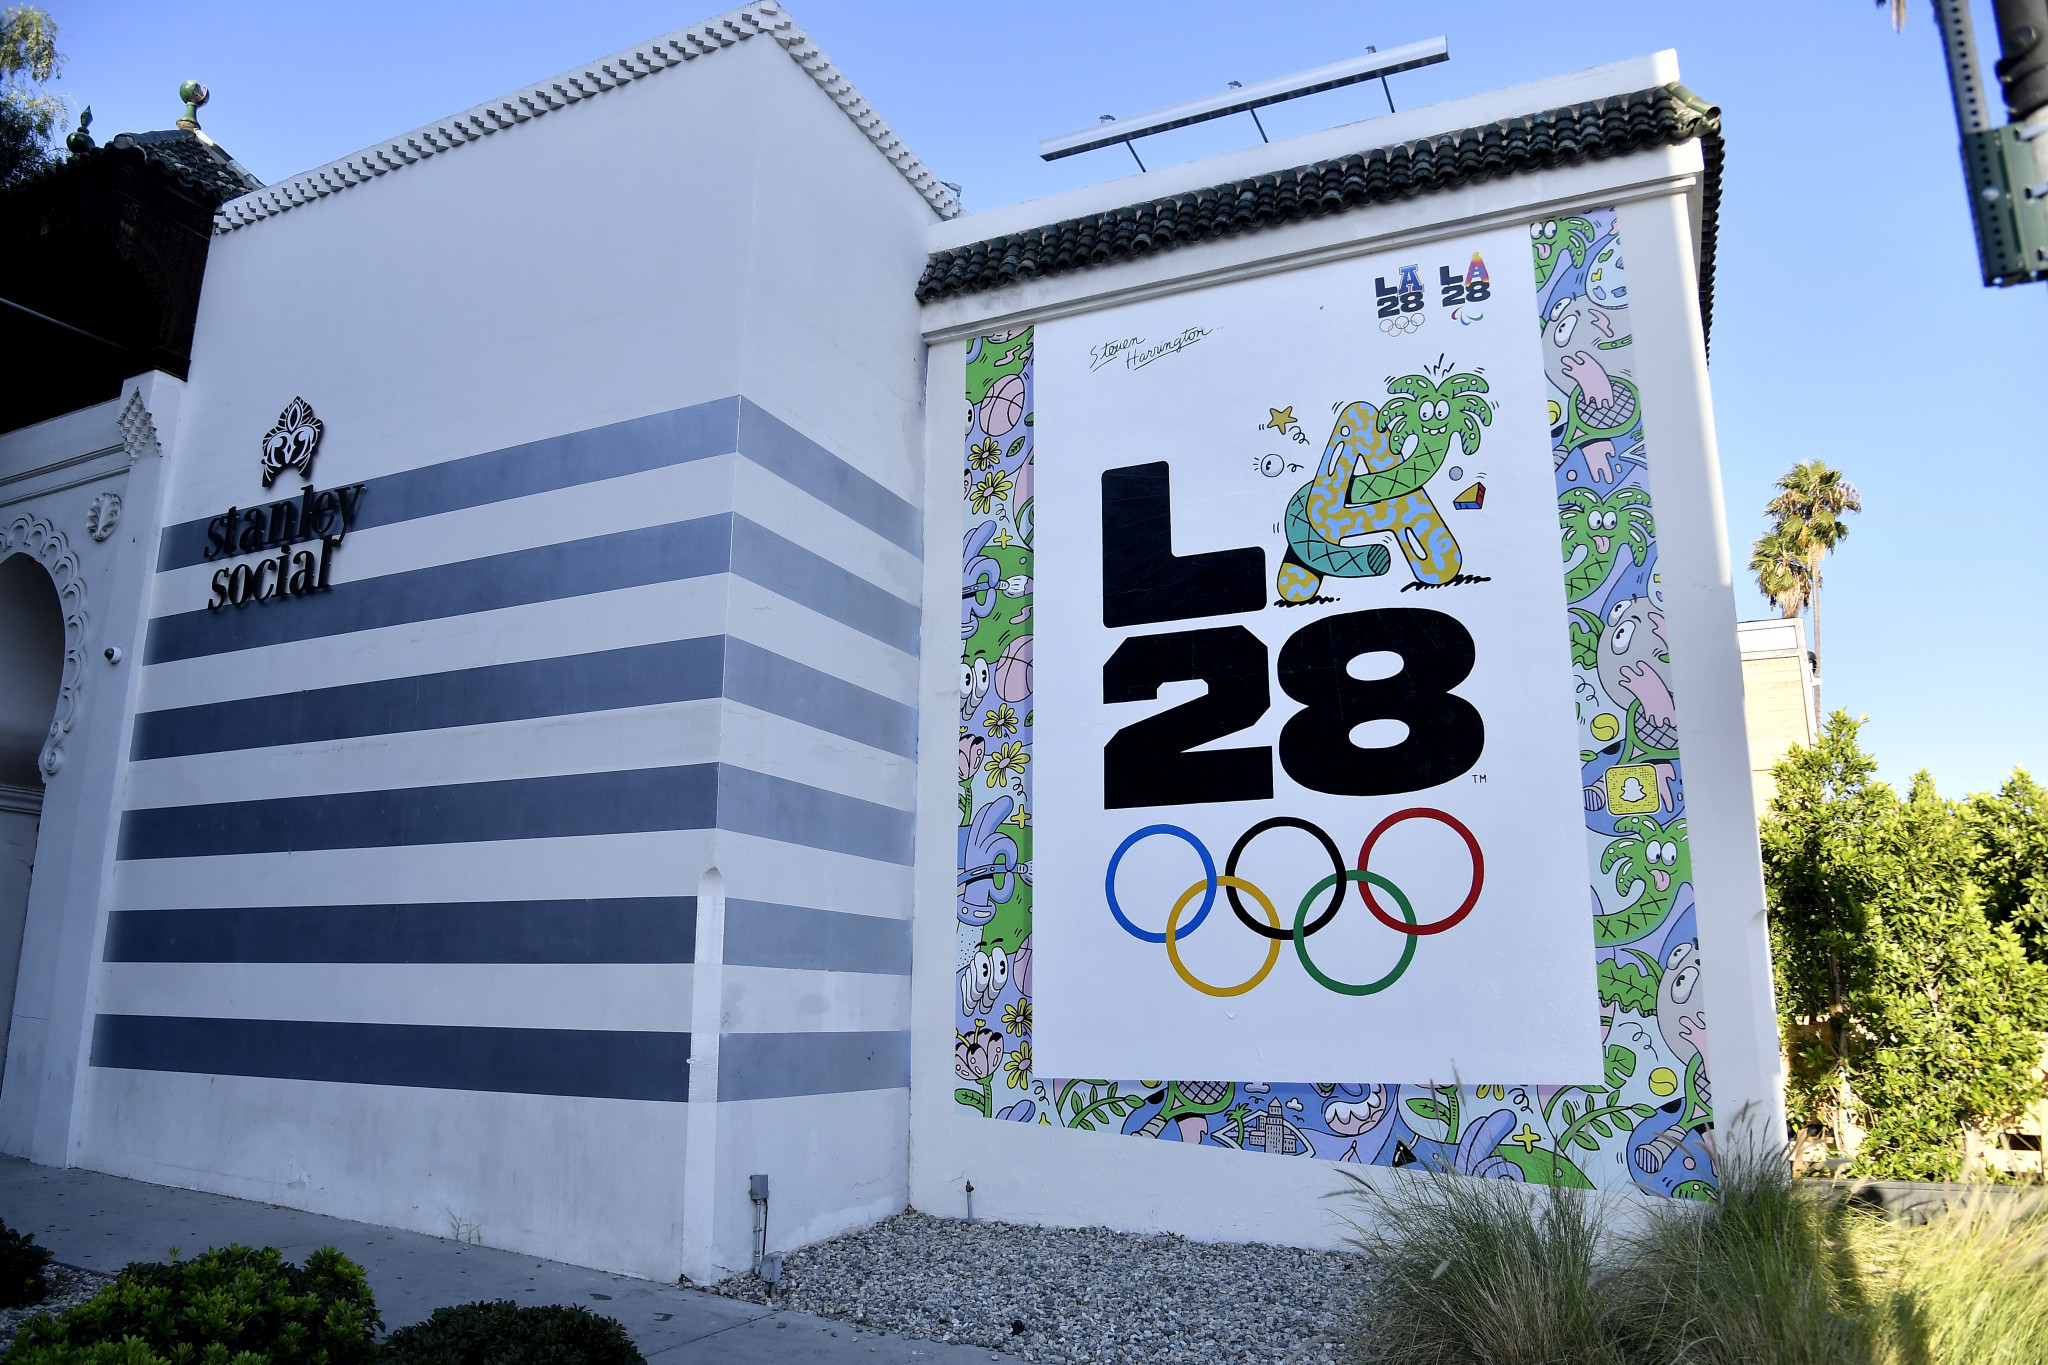 The public safety Cooperative would help to organise law enforcement resources during the Los Angeles 2028 Olympic and Paralympic Games ©Getty Images